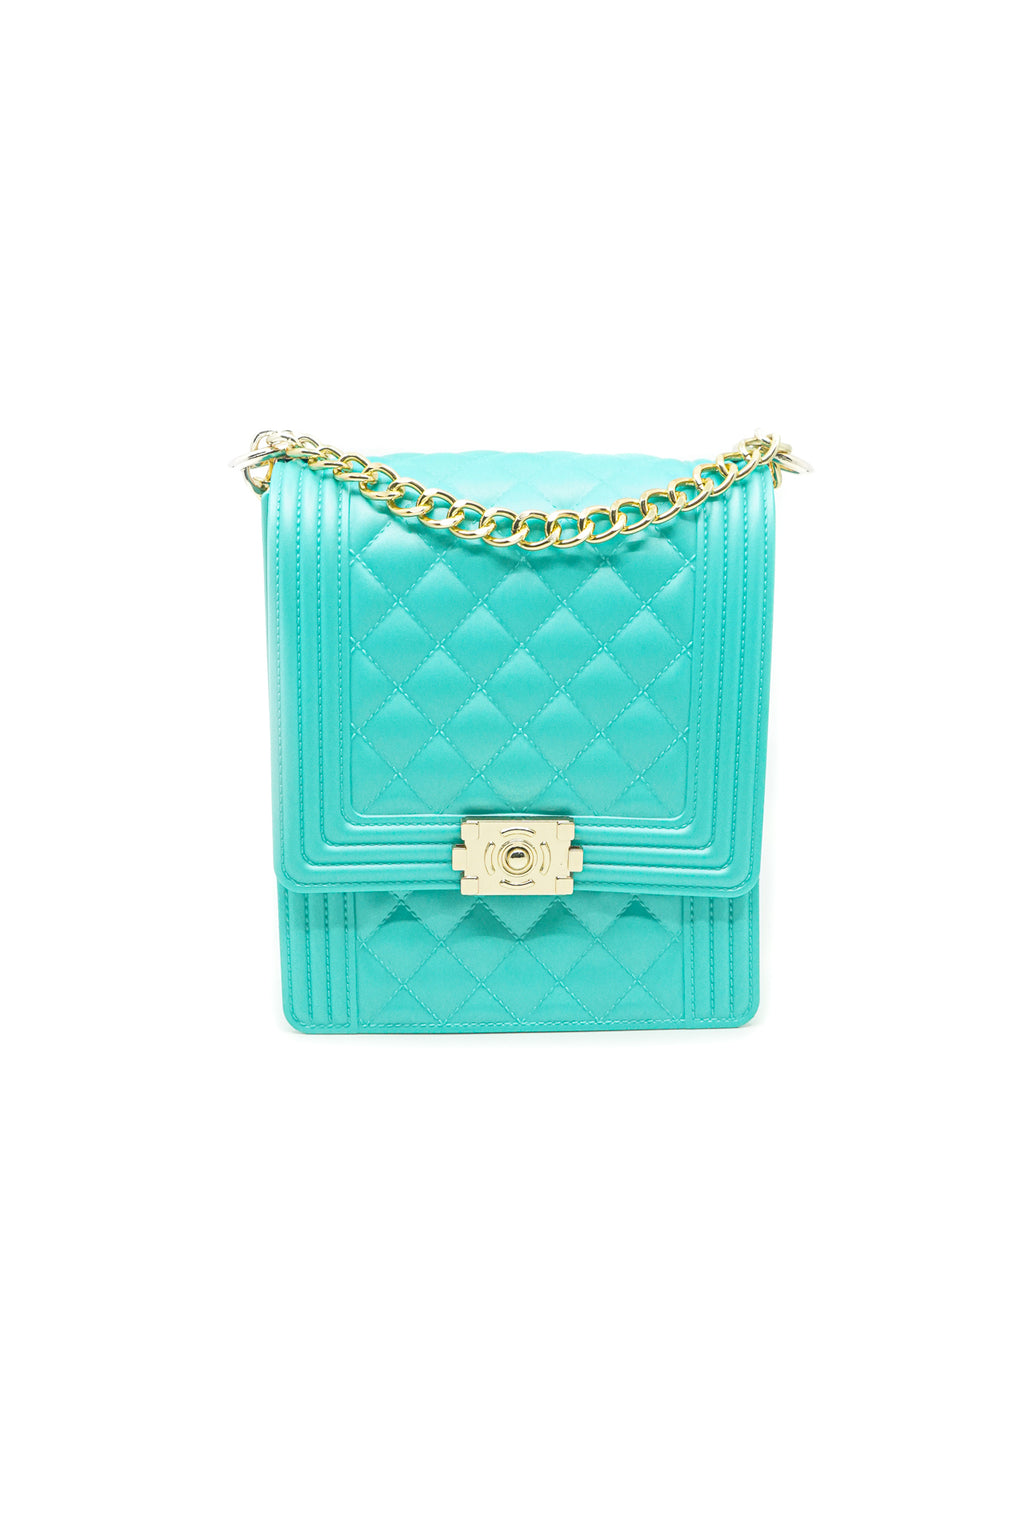 Rectangle Quilted Jelly Bag in Mint Green - Fashion House USA